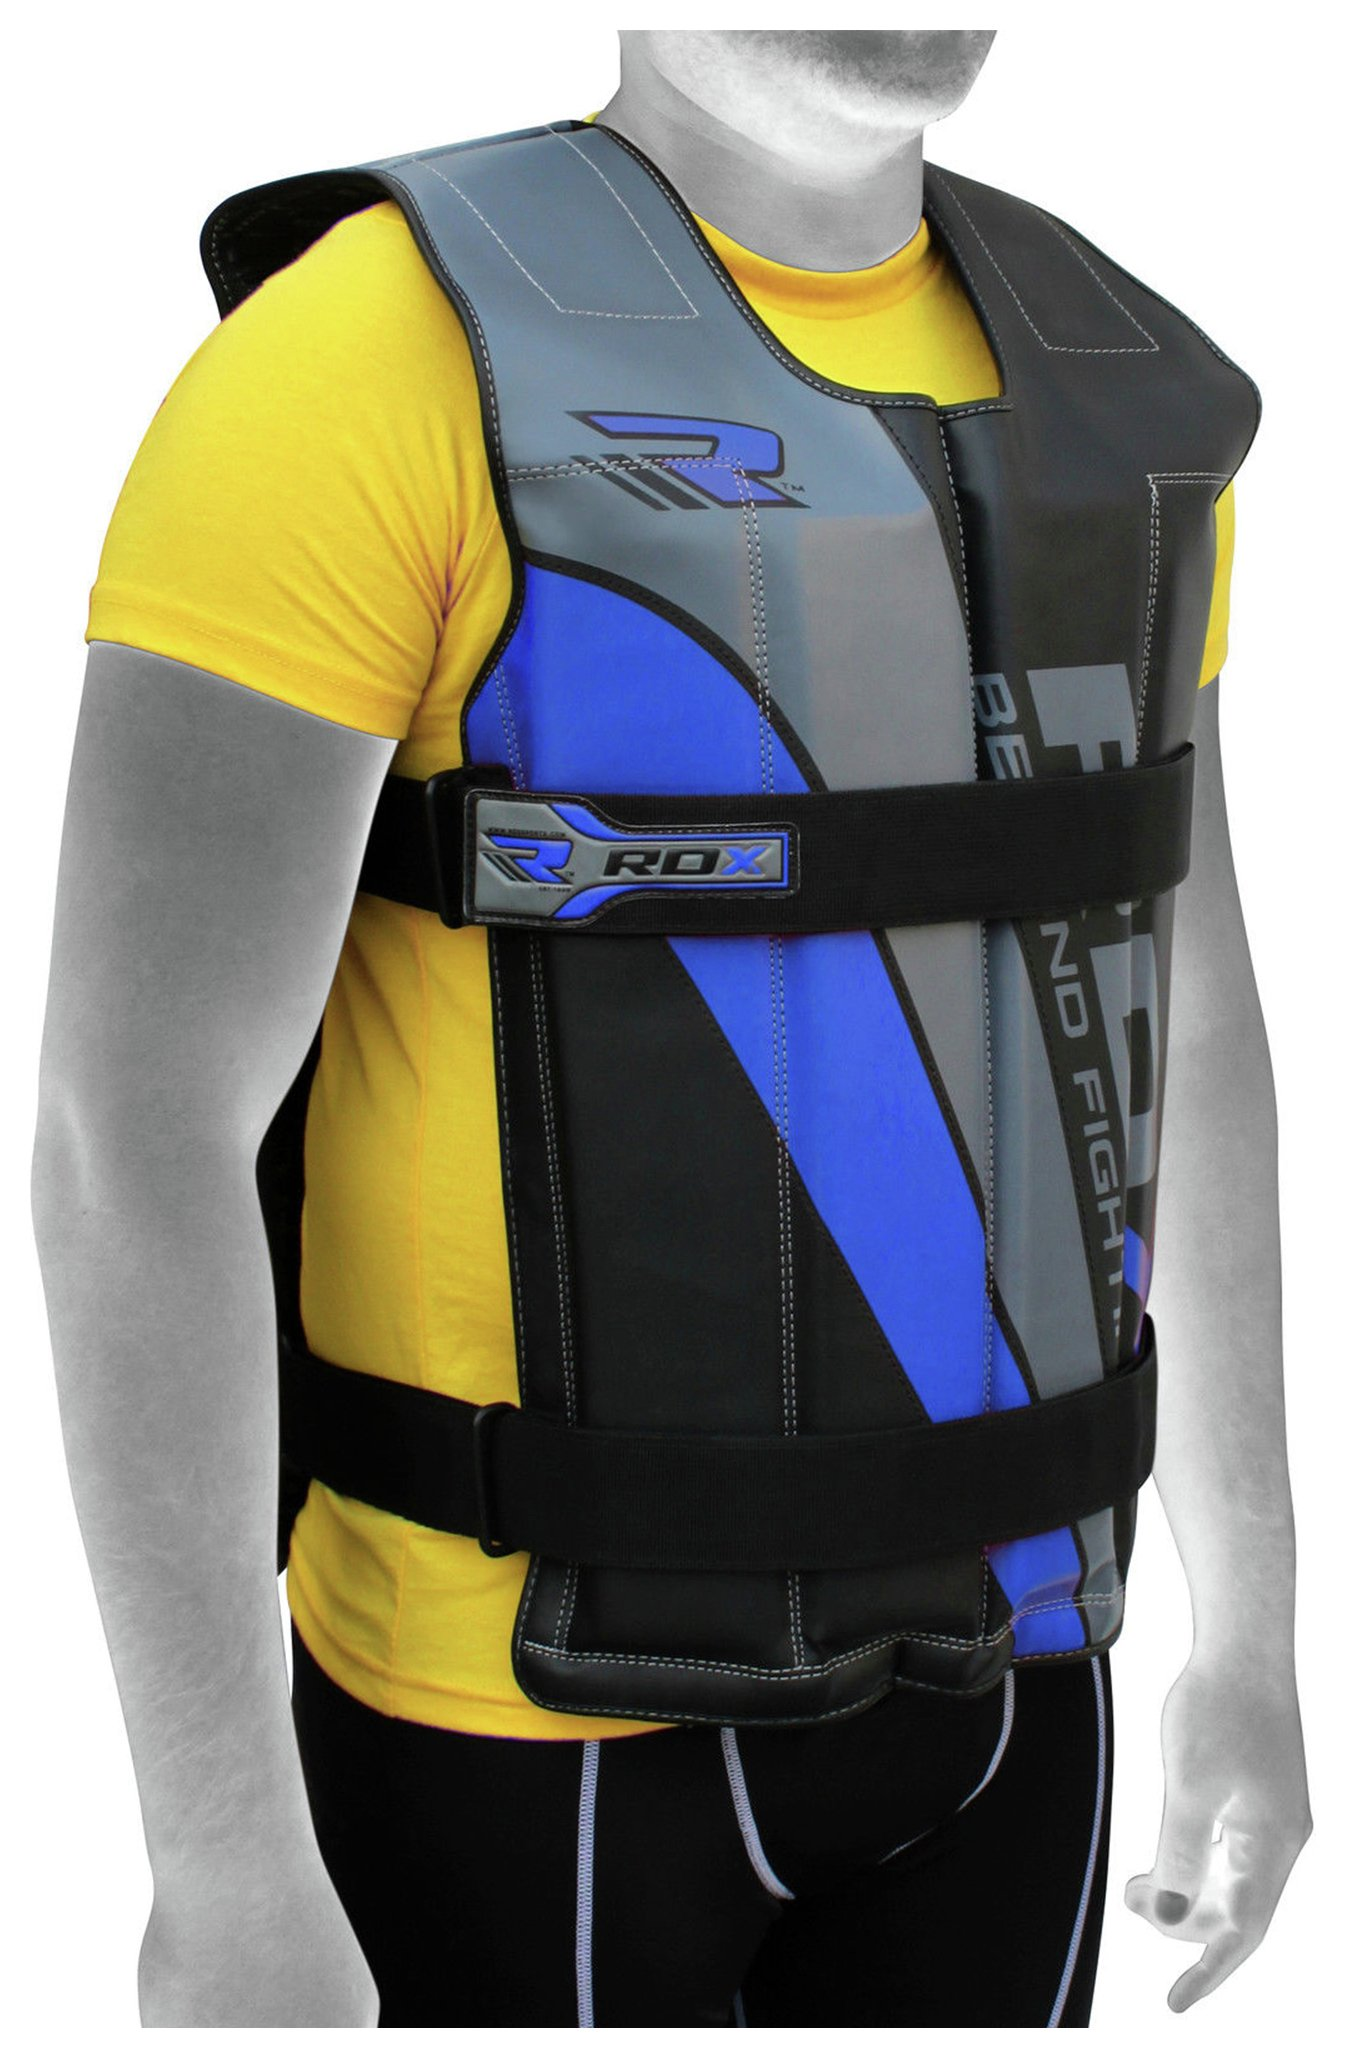 A person wearing RDX adjustable weighted vest